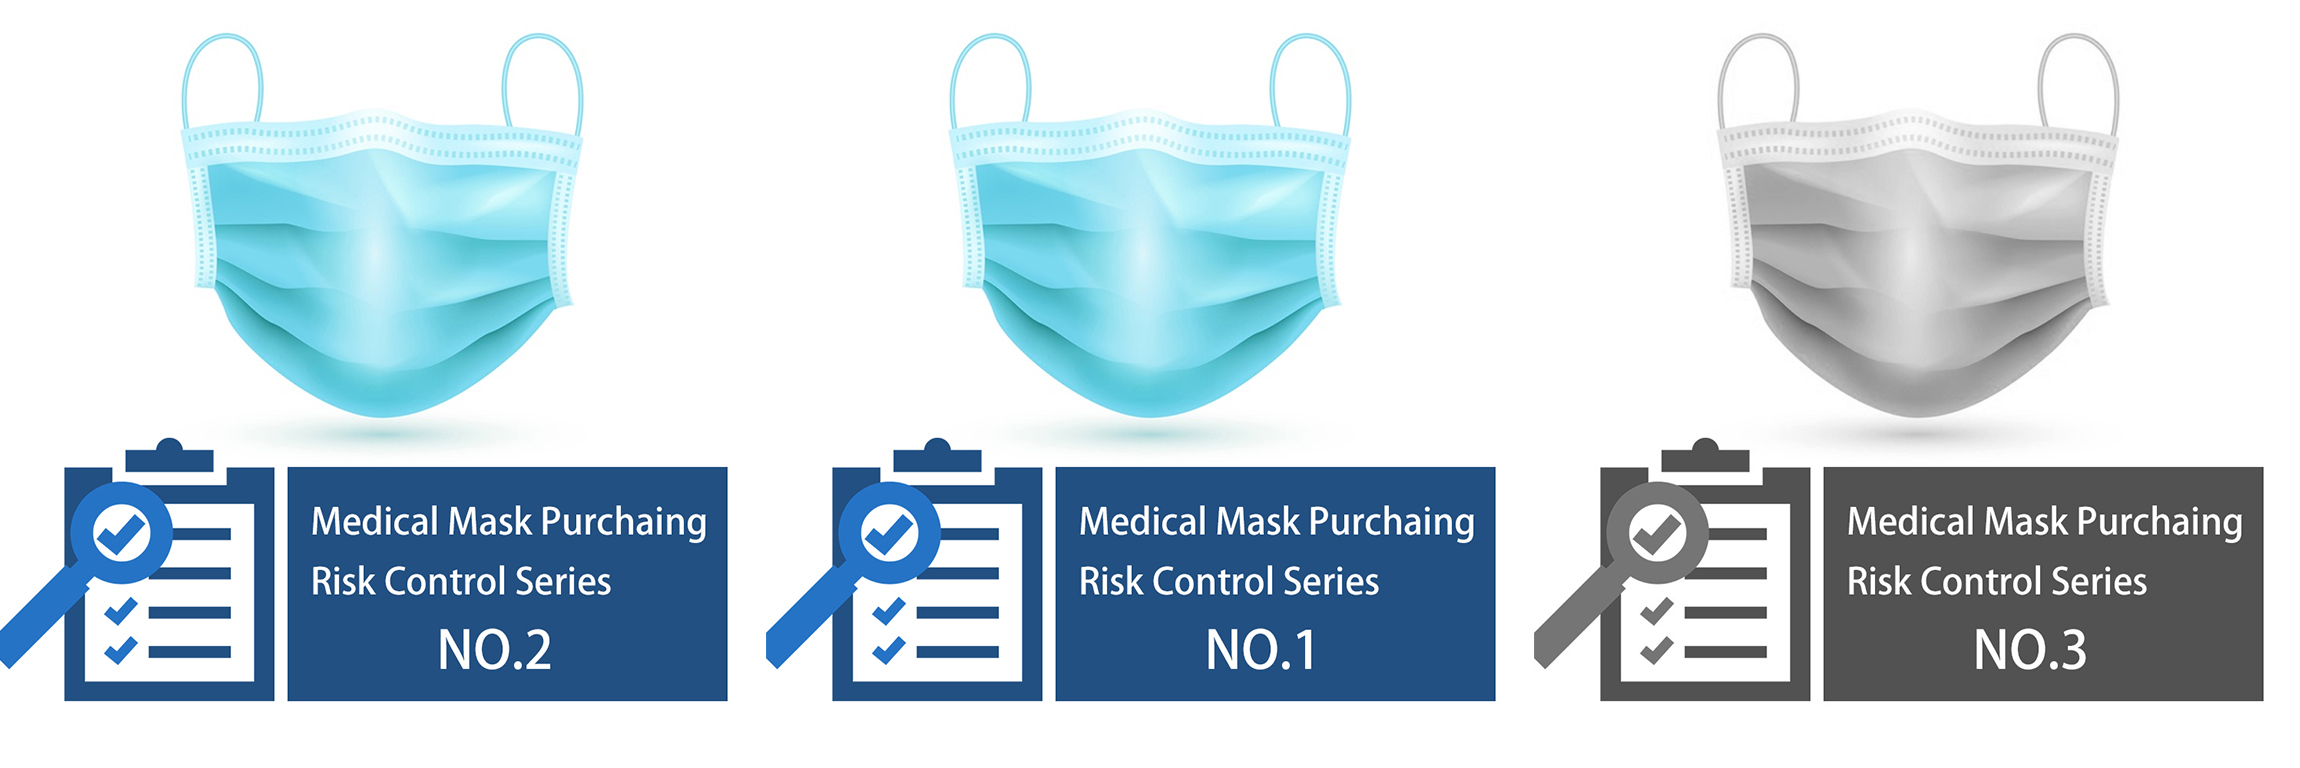 3 articles to reduce the risk of buying medical face masks